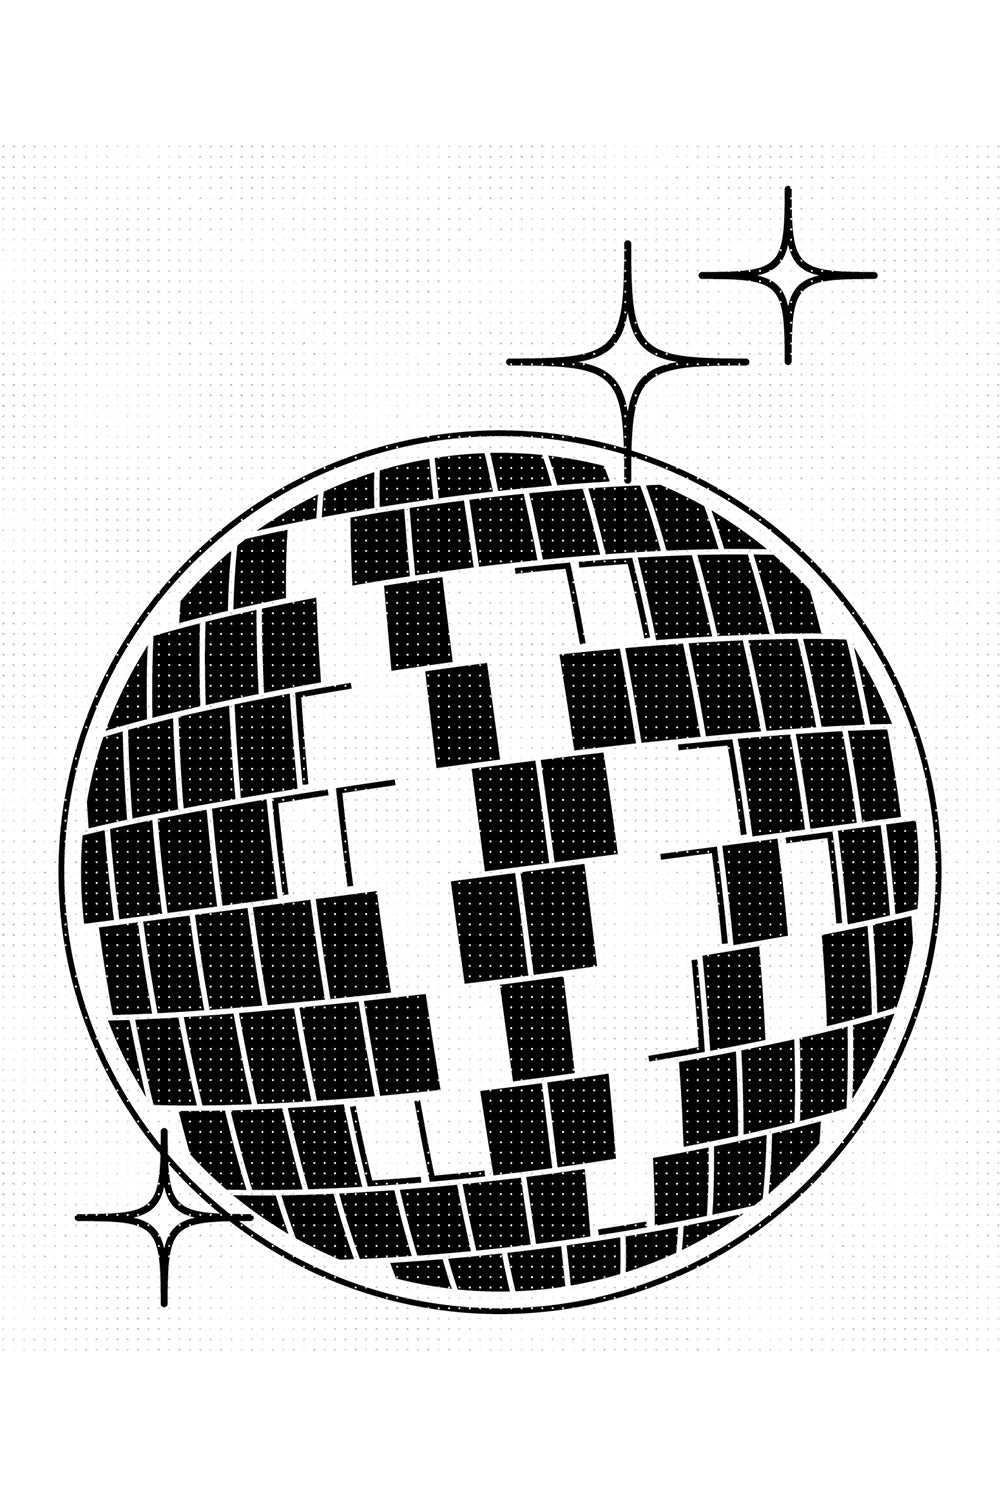 FREE disco ball for Personal Use SVG, PNG clipart, DXF, clipart, EPS, vector cut file instant download